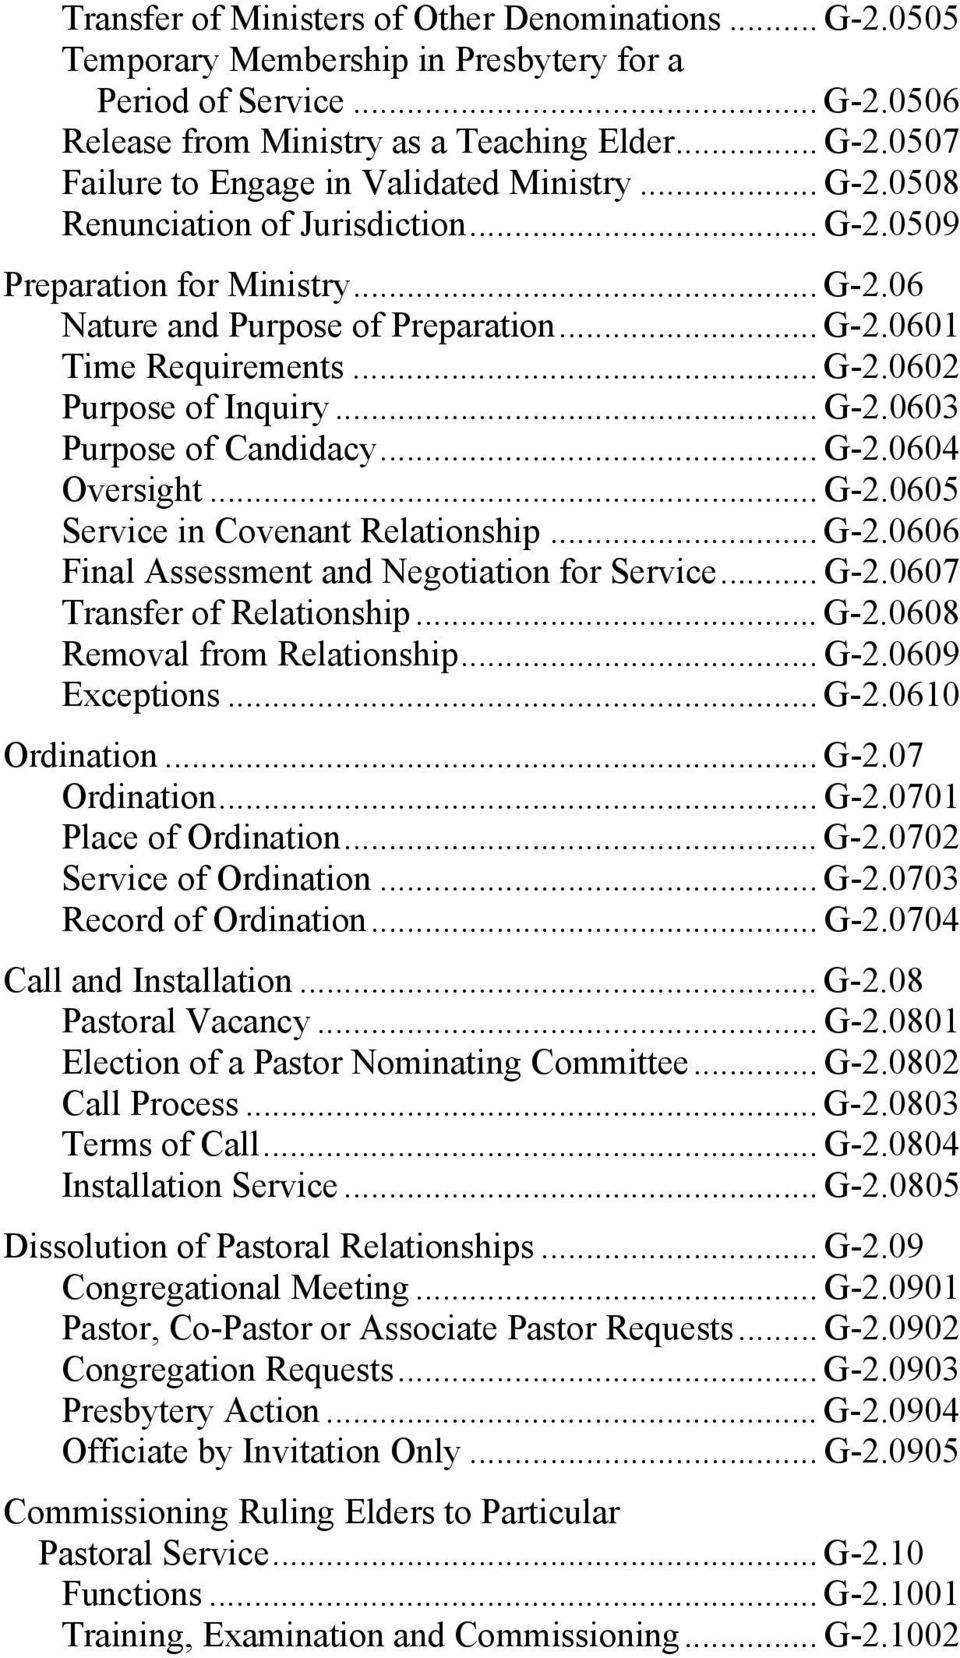 .. G-2.0604 Oversight... G-2.0605 Service in Covenant Relationship... G-2.0606 Final Assessment and Negotiation for Service... G-2.0607 Transfer of Relationship... G-2.0608 Removal from Relationship.